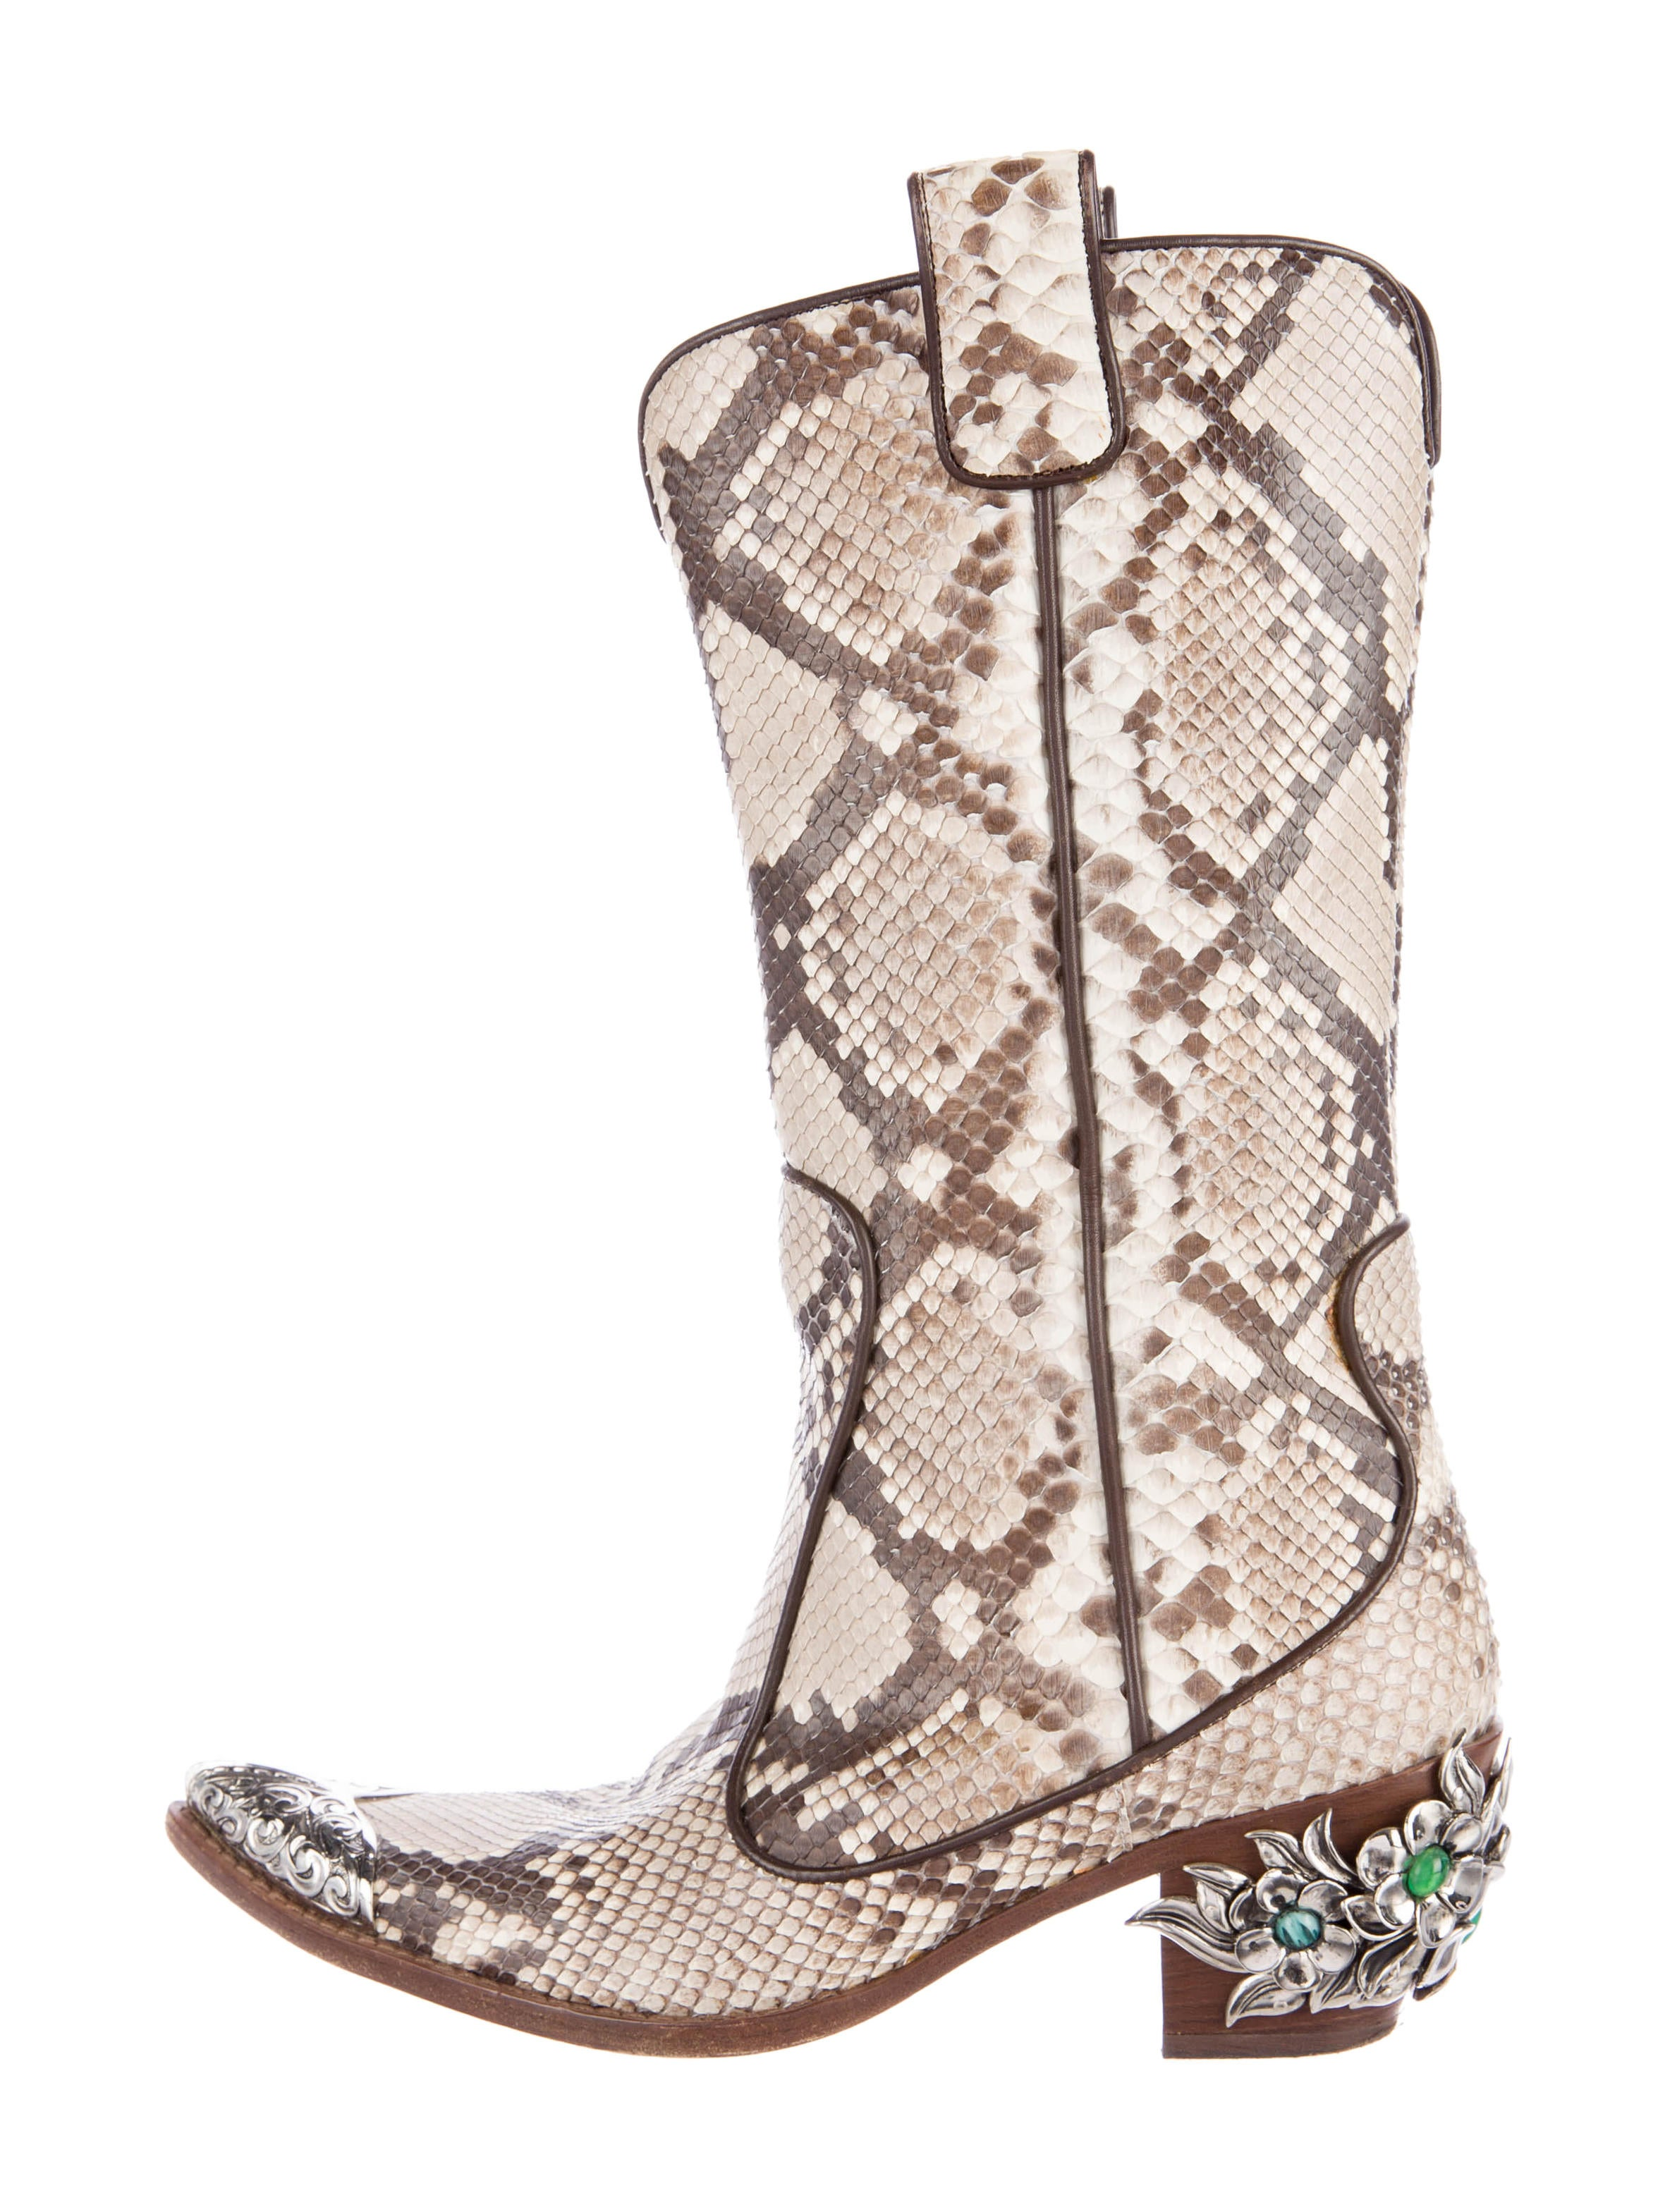 Giuseppe Zanotti Leather Embossed Cowboy Boots Shoes